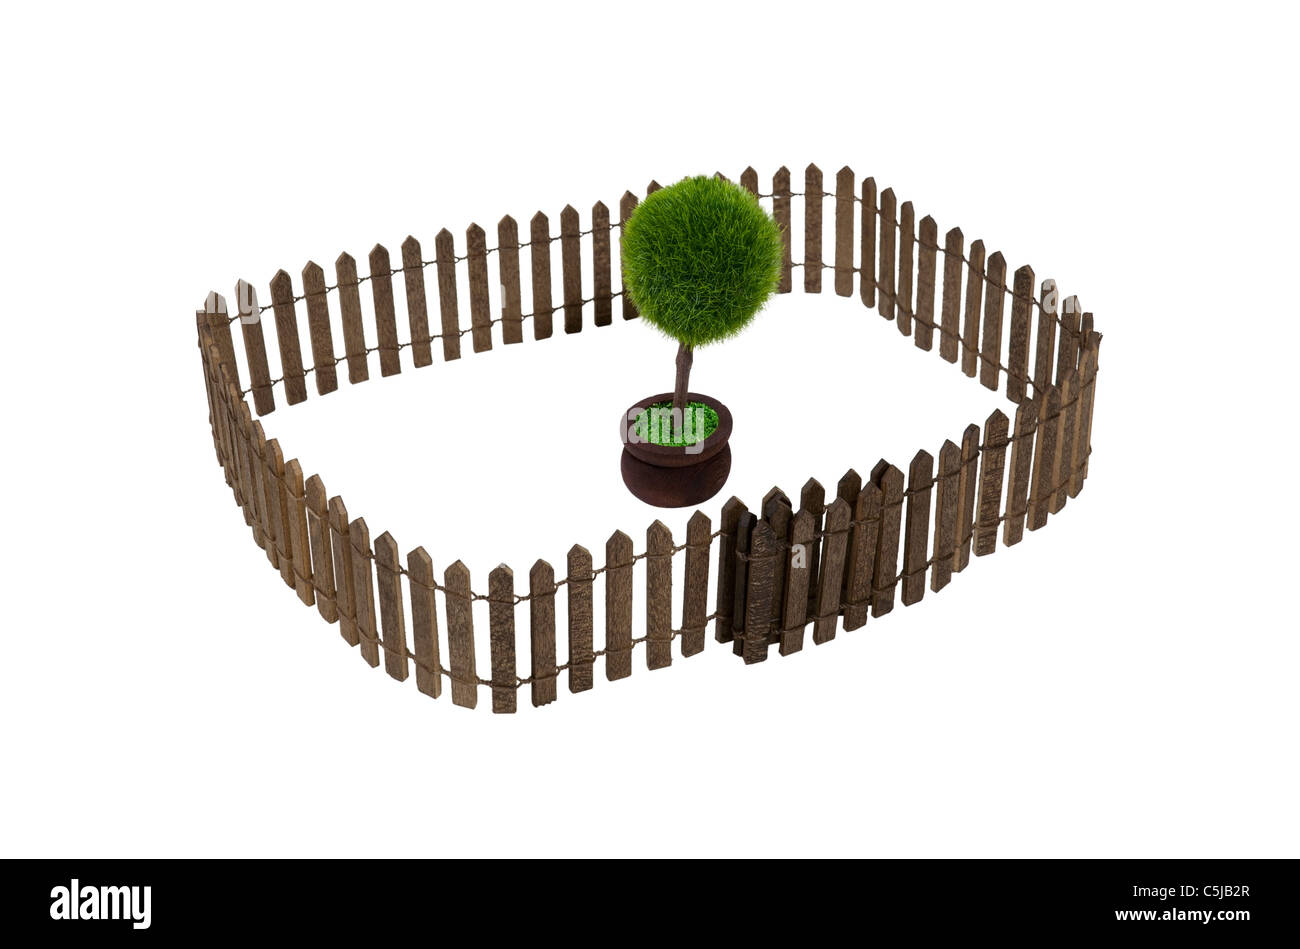 Nature preserved shown by a potted tree in a yard surrounded by a fence - path included - Stock Image